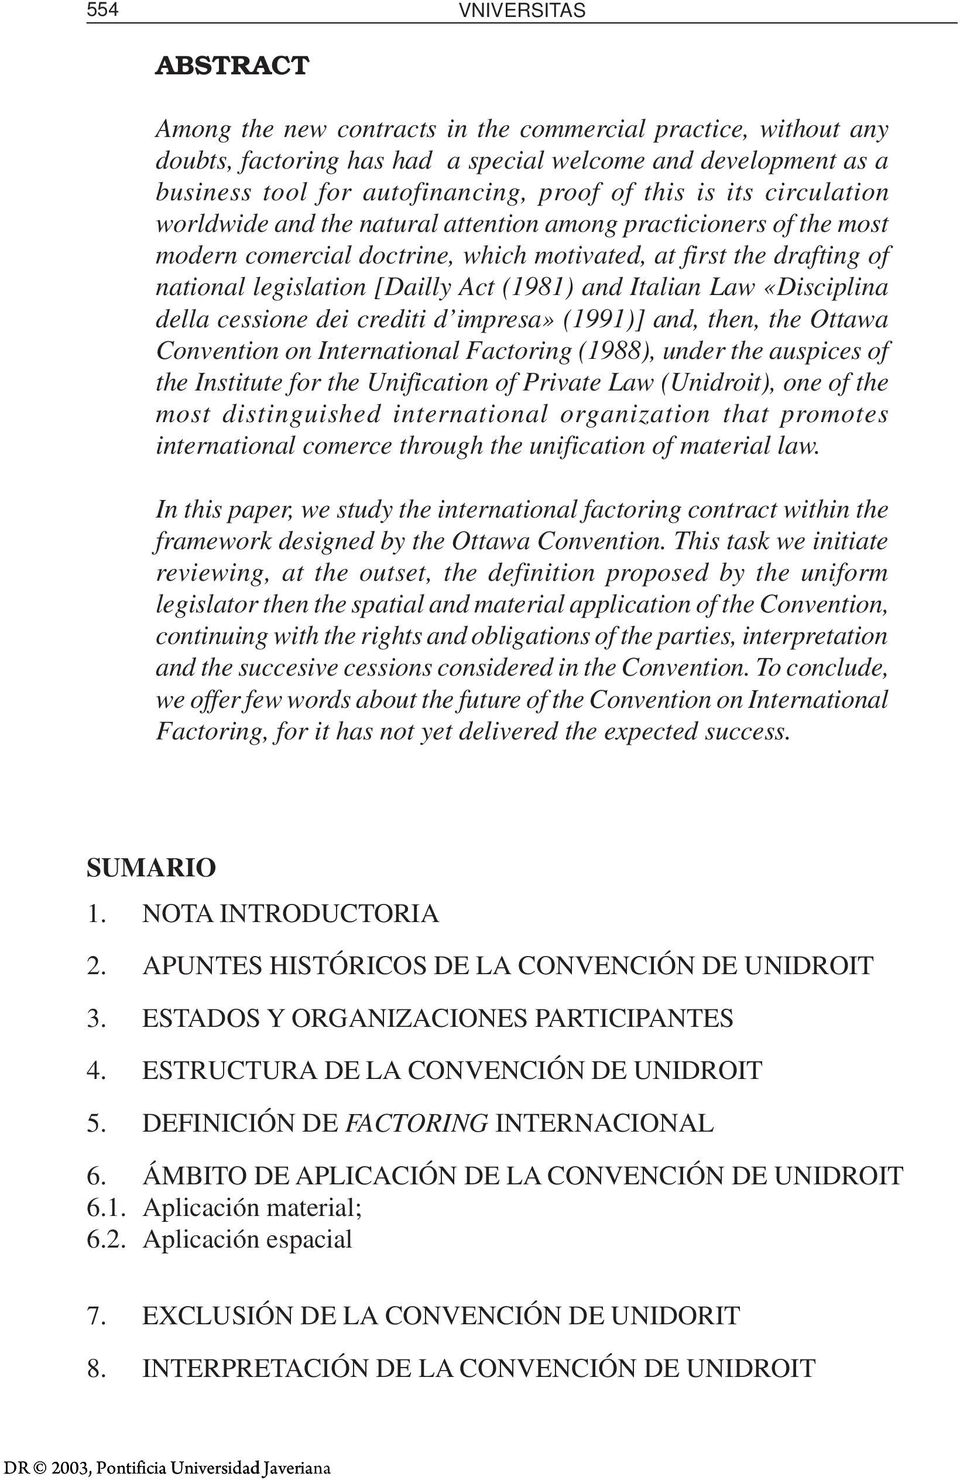 (1981) and Italian Law «Disciplina della cessione dei crediti d impresa» (1991)] and, then, the Ottawa Convention on International Factoring (1988), under the auspices of the Institute for the